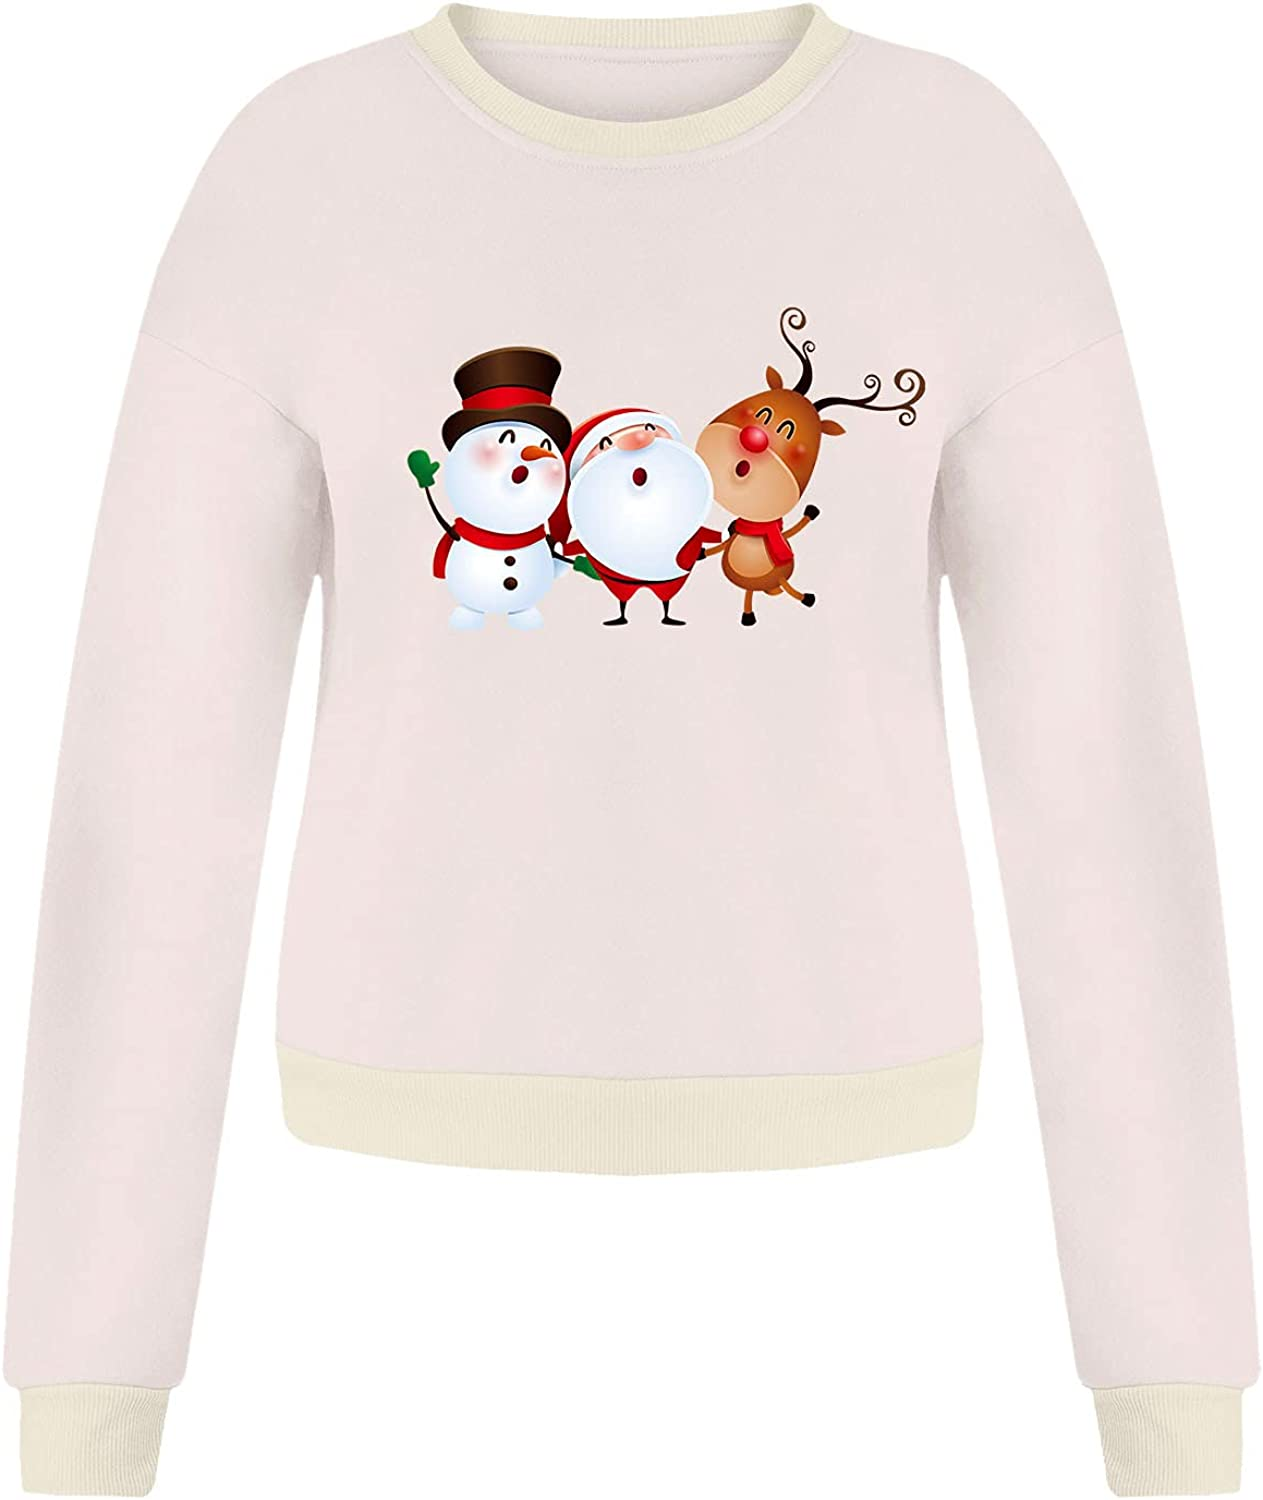 Christmas Graphic Sweatshirts for Women Fashion Crewneck Long Sleeve Pullover Cute Snowman Elk Casual Oversized Tops